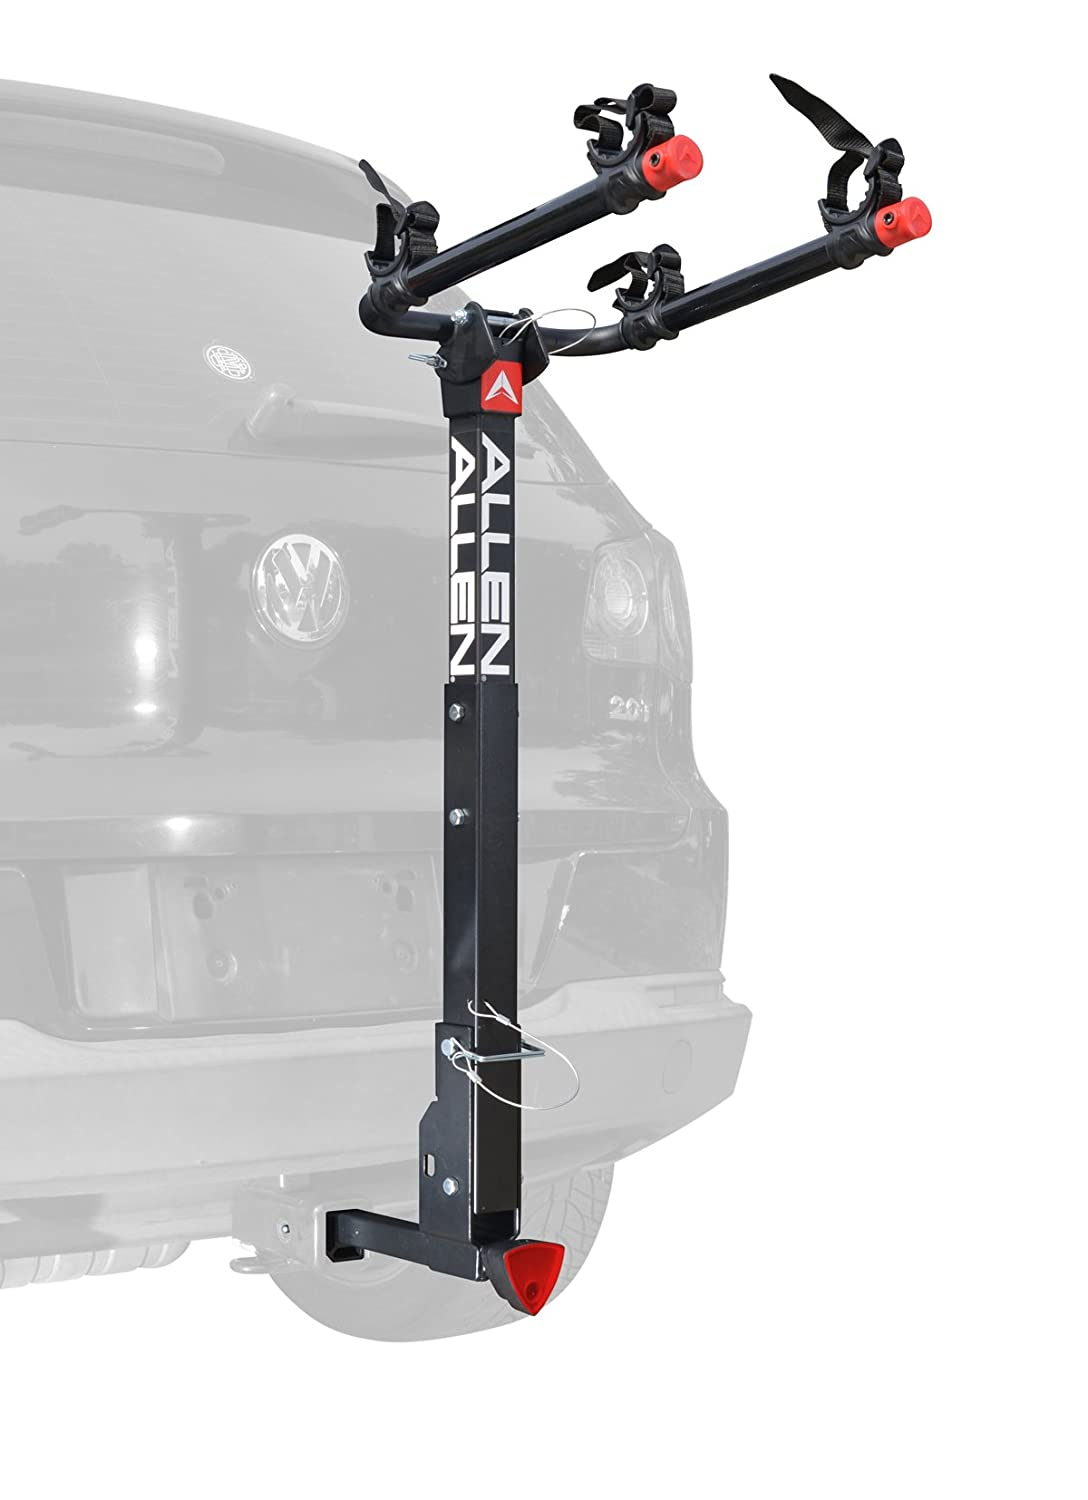 Allen Sports 2-Bike Hitch Racks for 1 1 4 in. and 2 in. Hitch